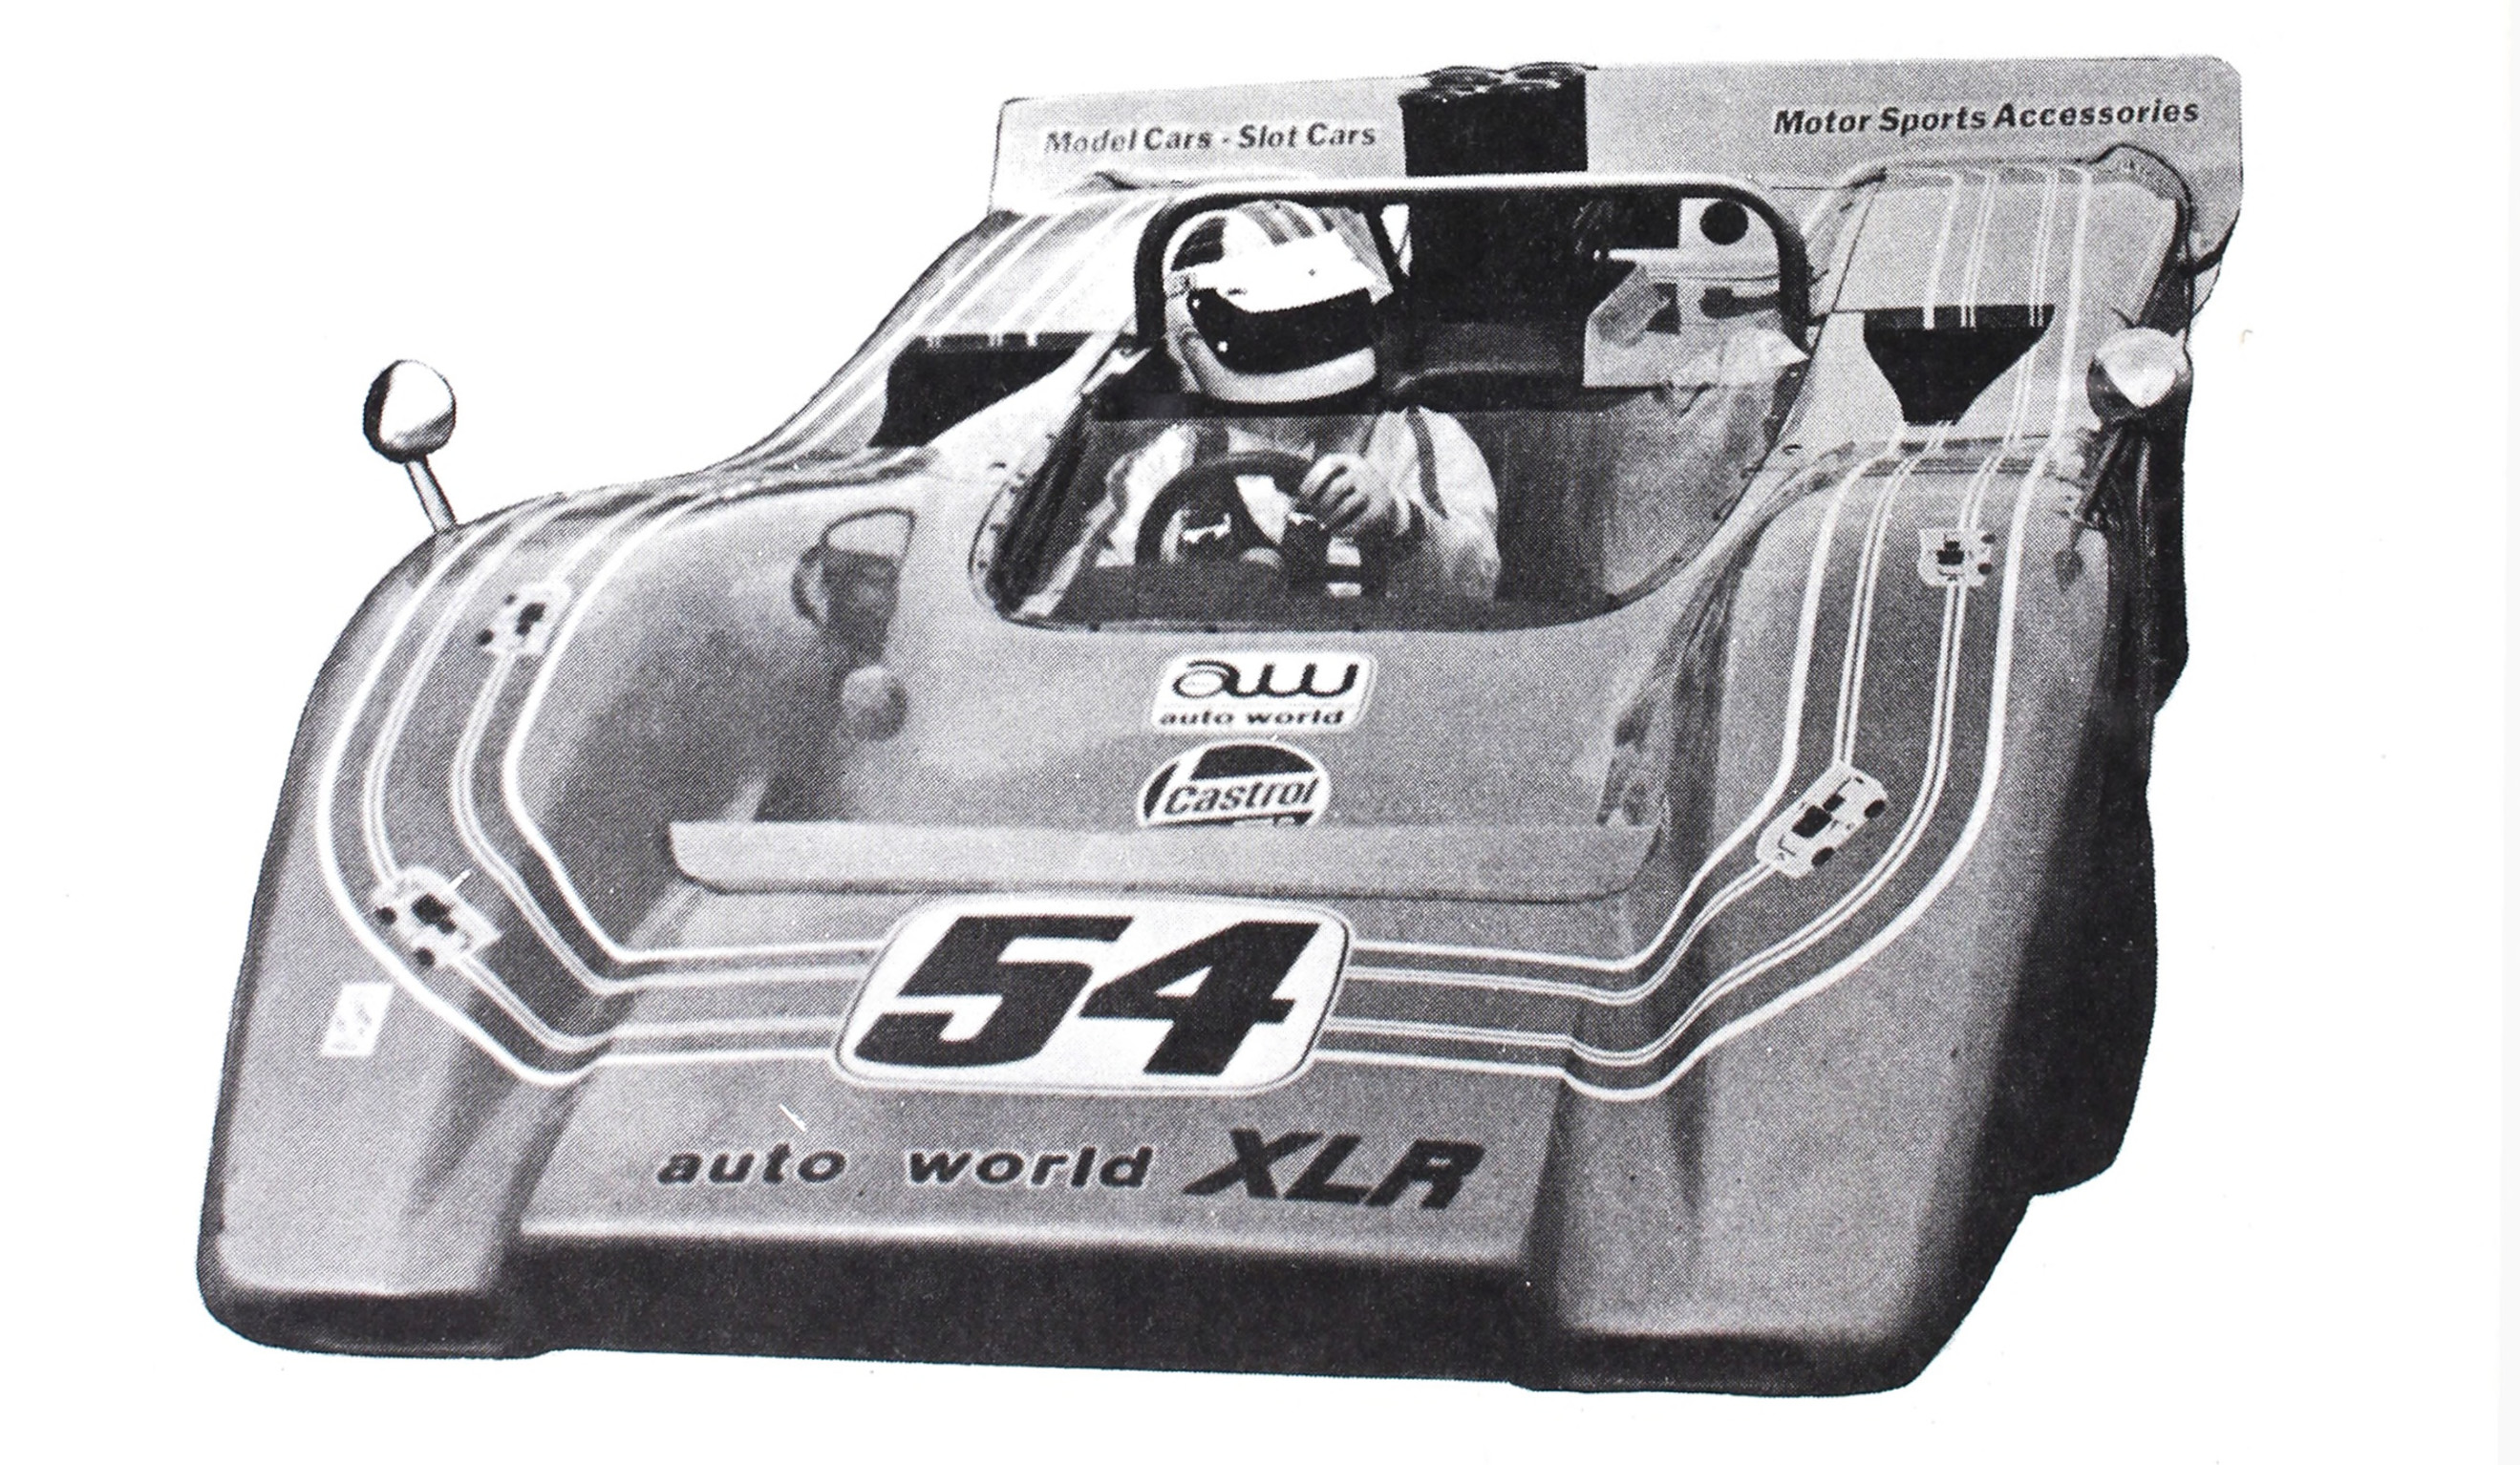 Race Car - AFX ROAD RACING, THE MOST POPULAR OF ALL TIME